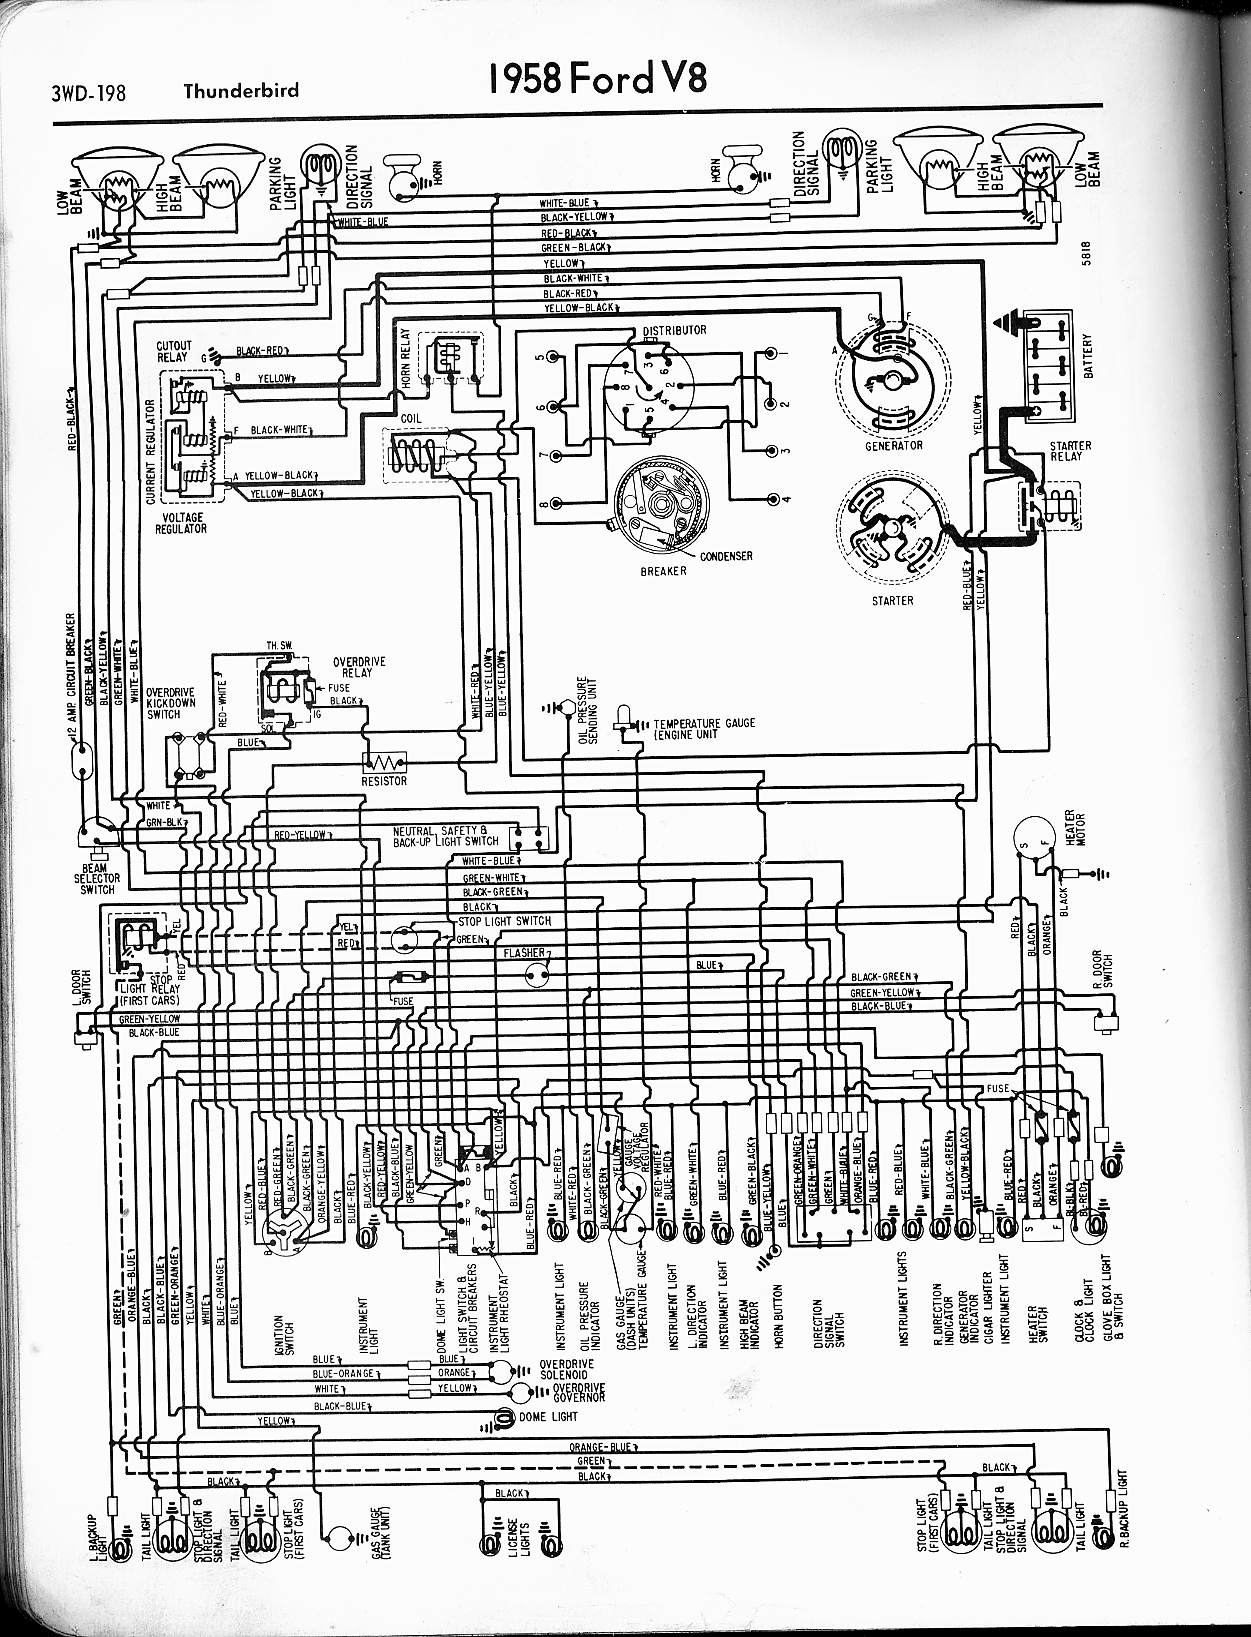 hight resolution of 1955 ford radio wiring wiring diagram article review1955 ford radio wiring wiring diagram55 ford radio schematic